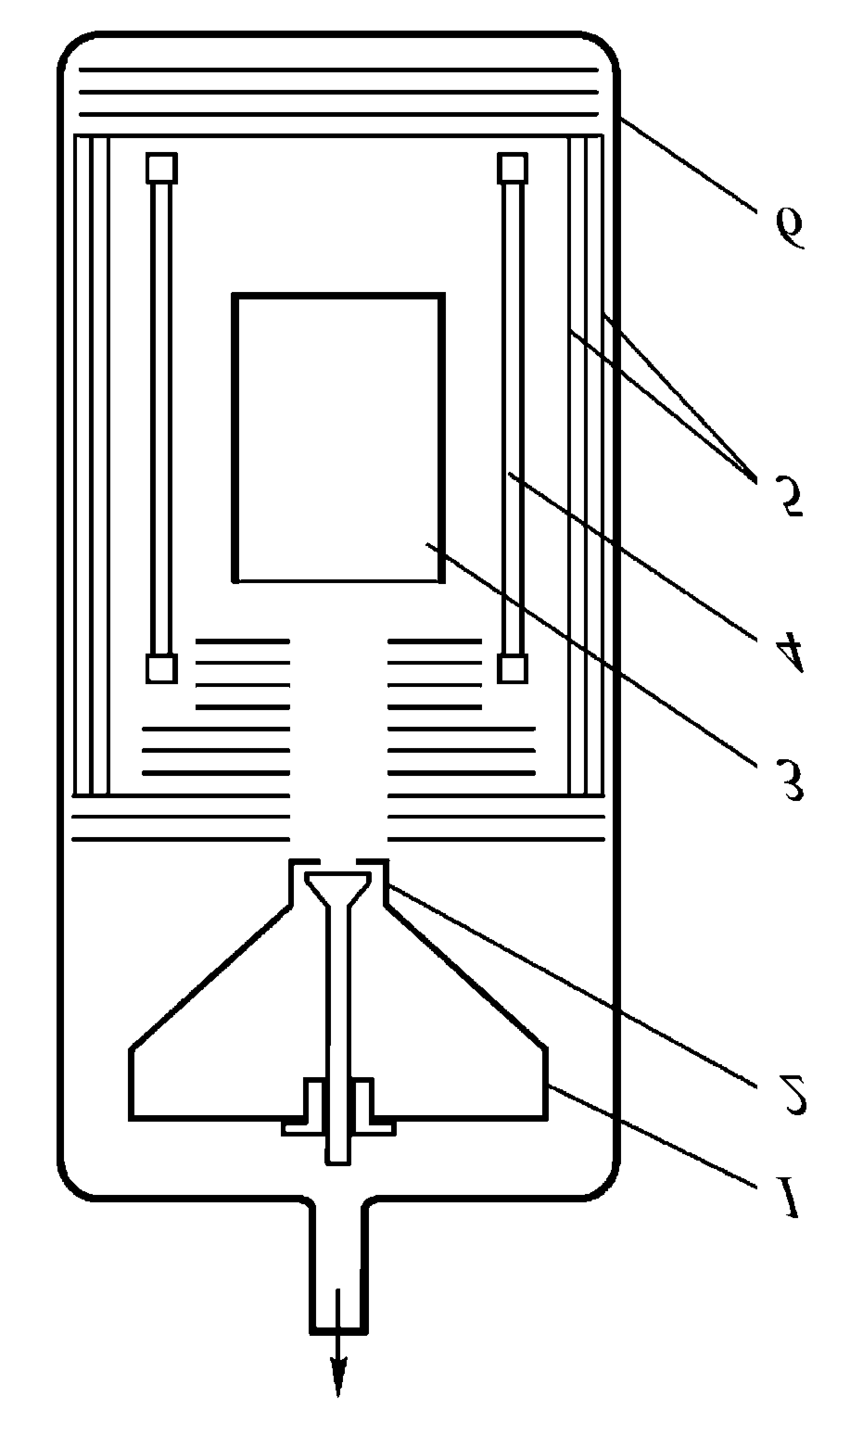 hight resolution of diagram of setup used for melting quartz glass with layered filling of the crucible 1 conical hopper 2 powder dispenser 3 crucible